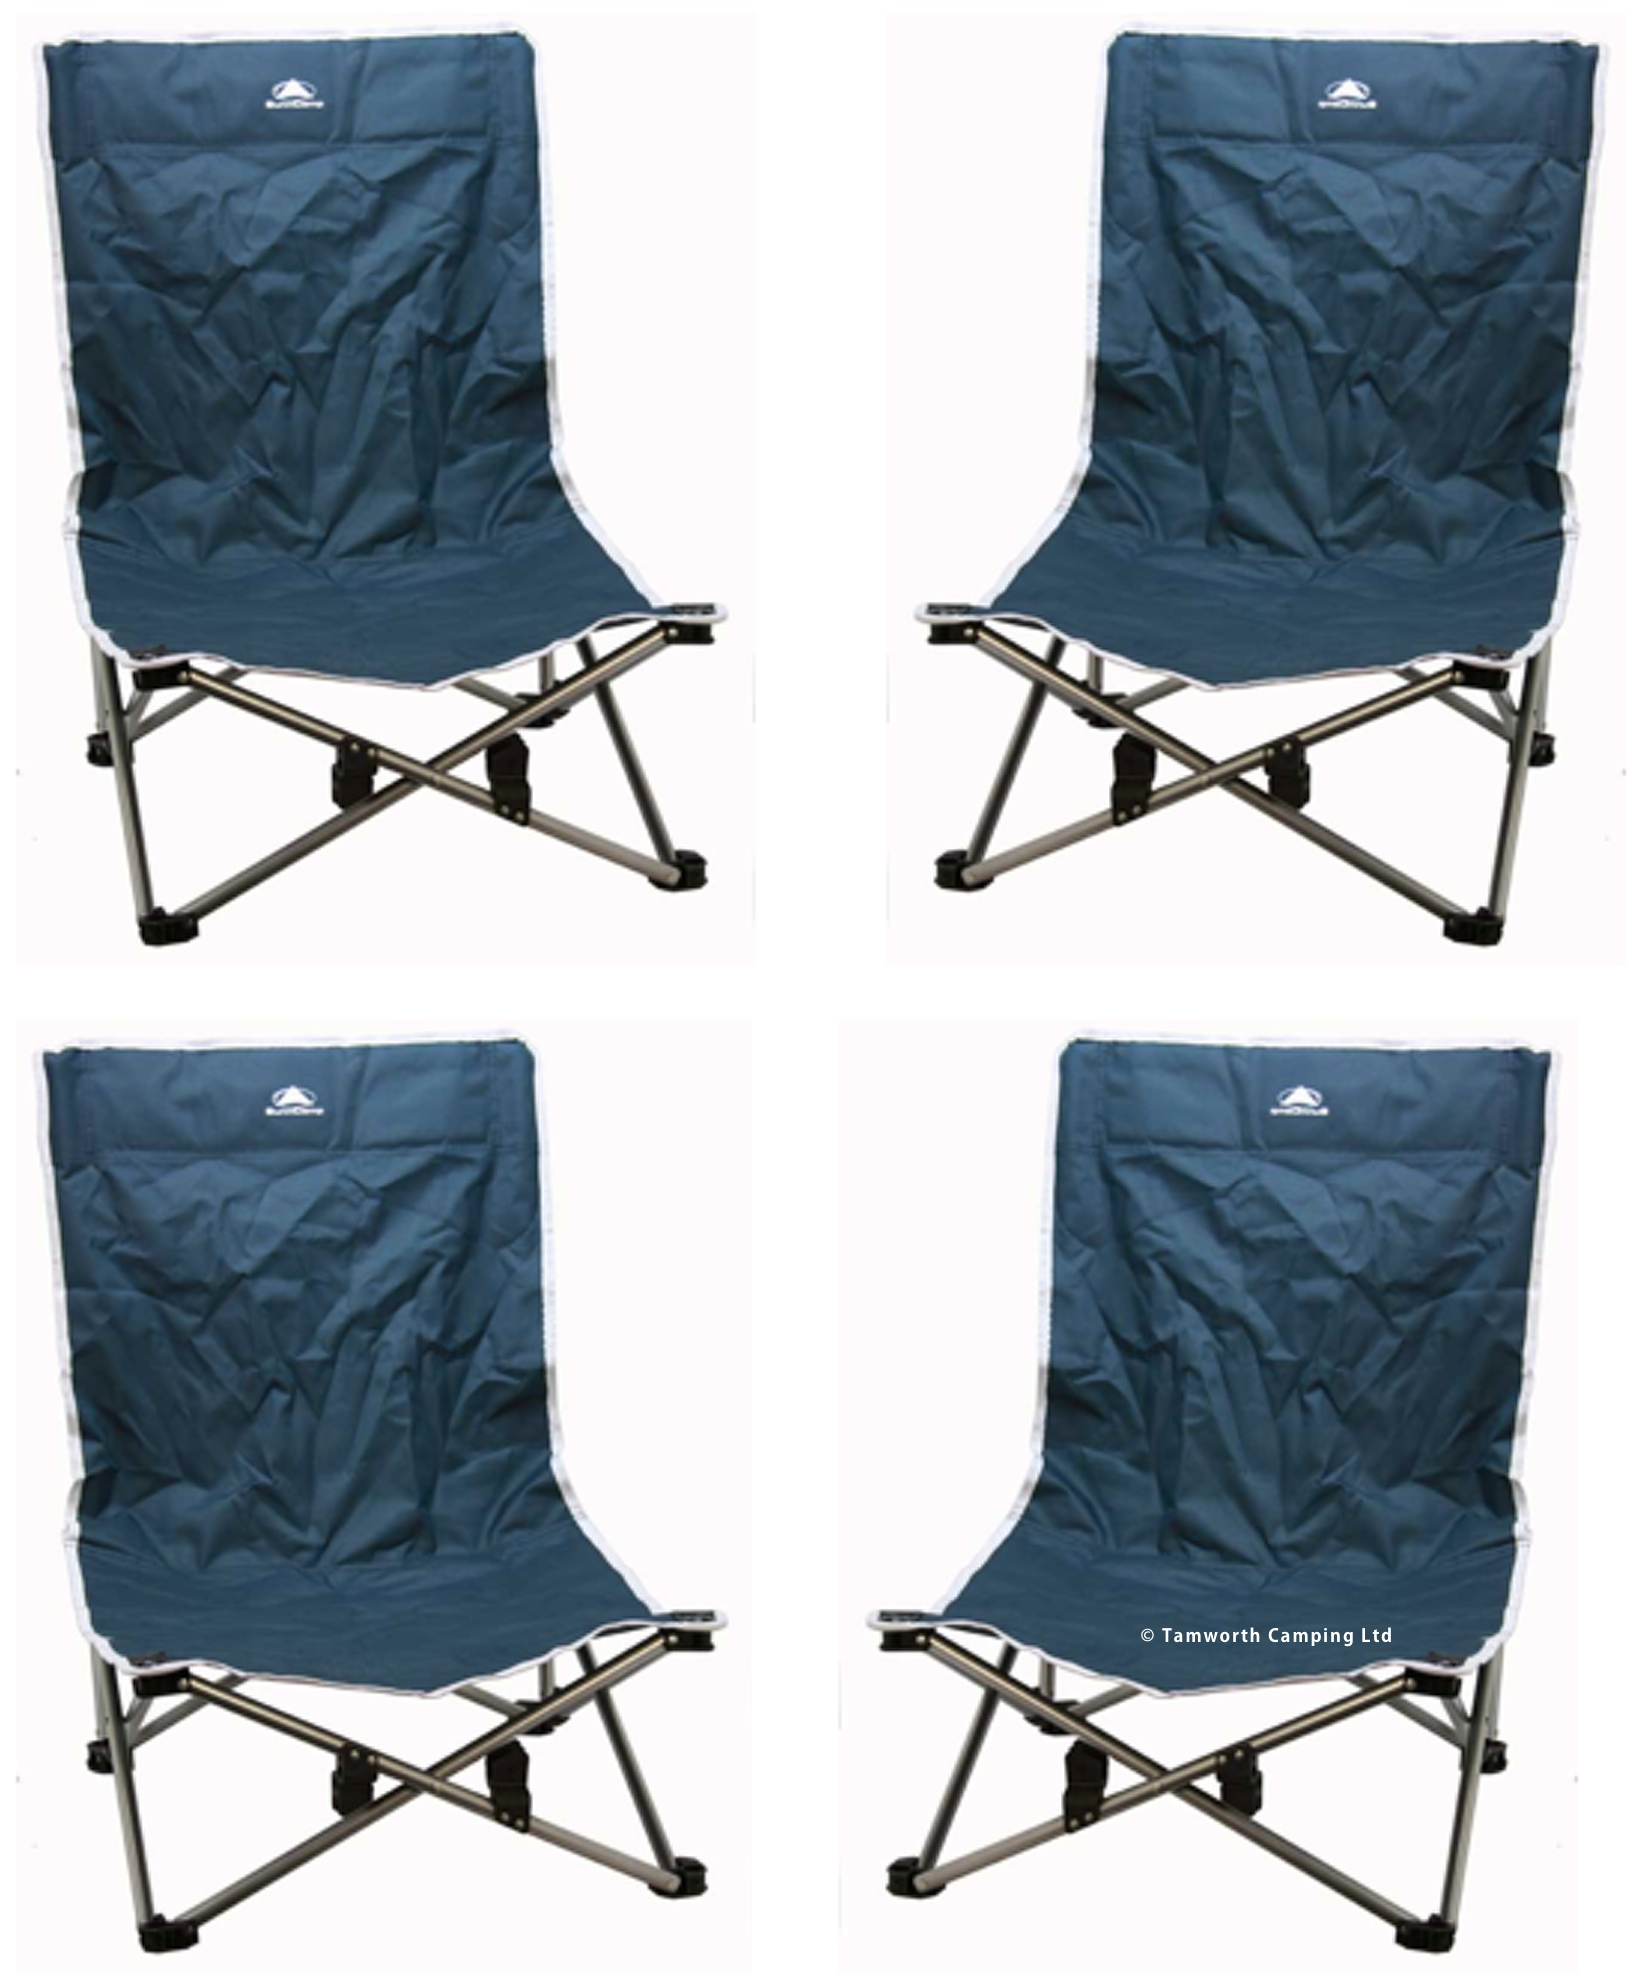 folding low beach chair desk staples sunncamp steel for camping